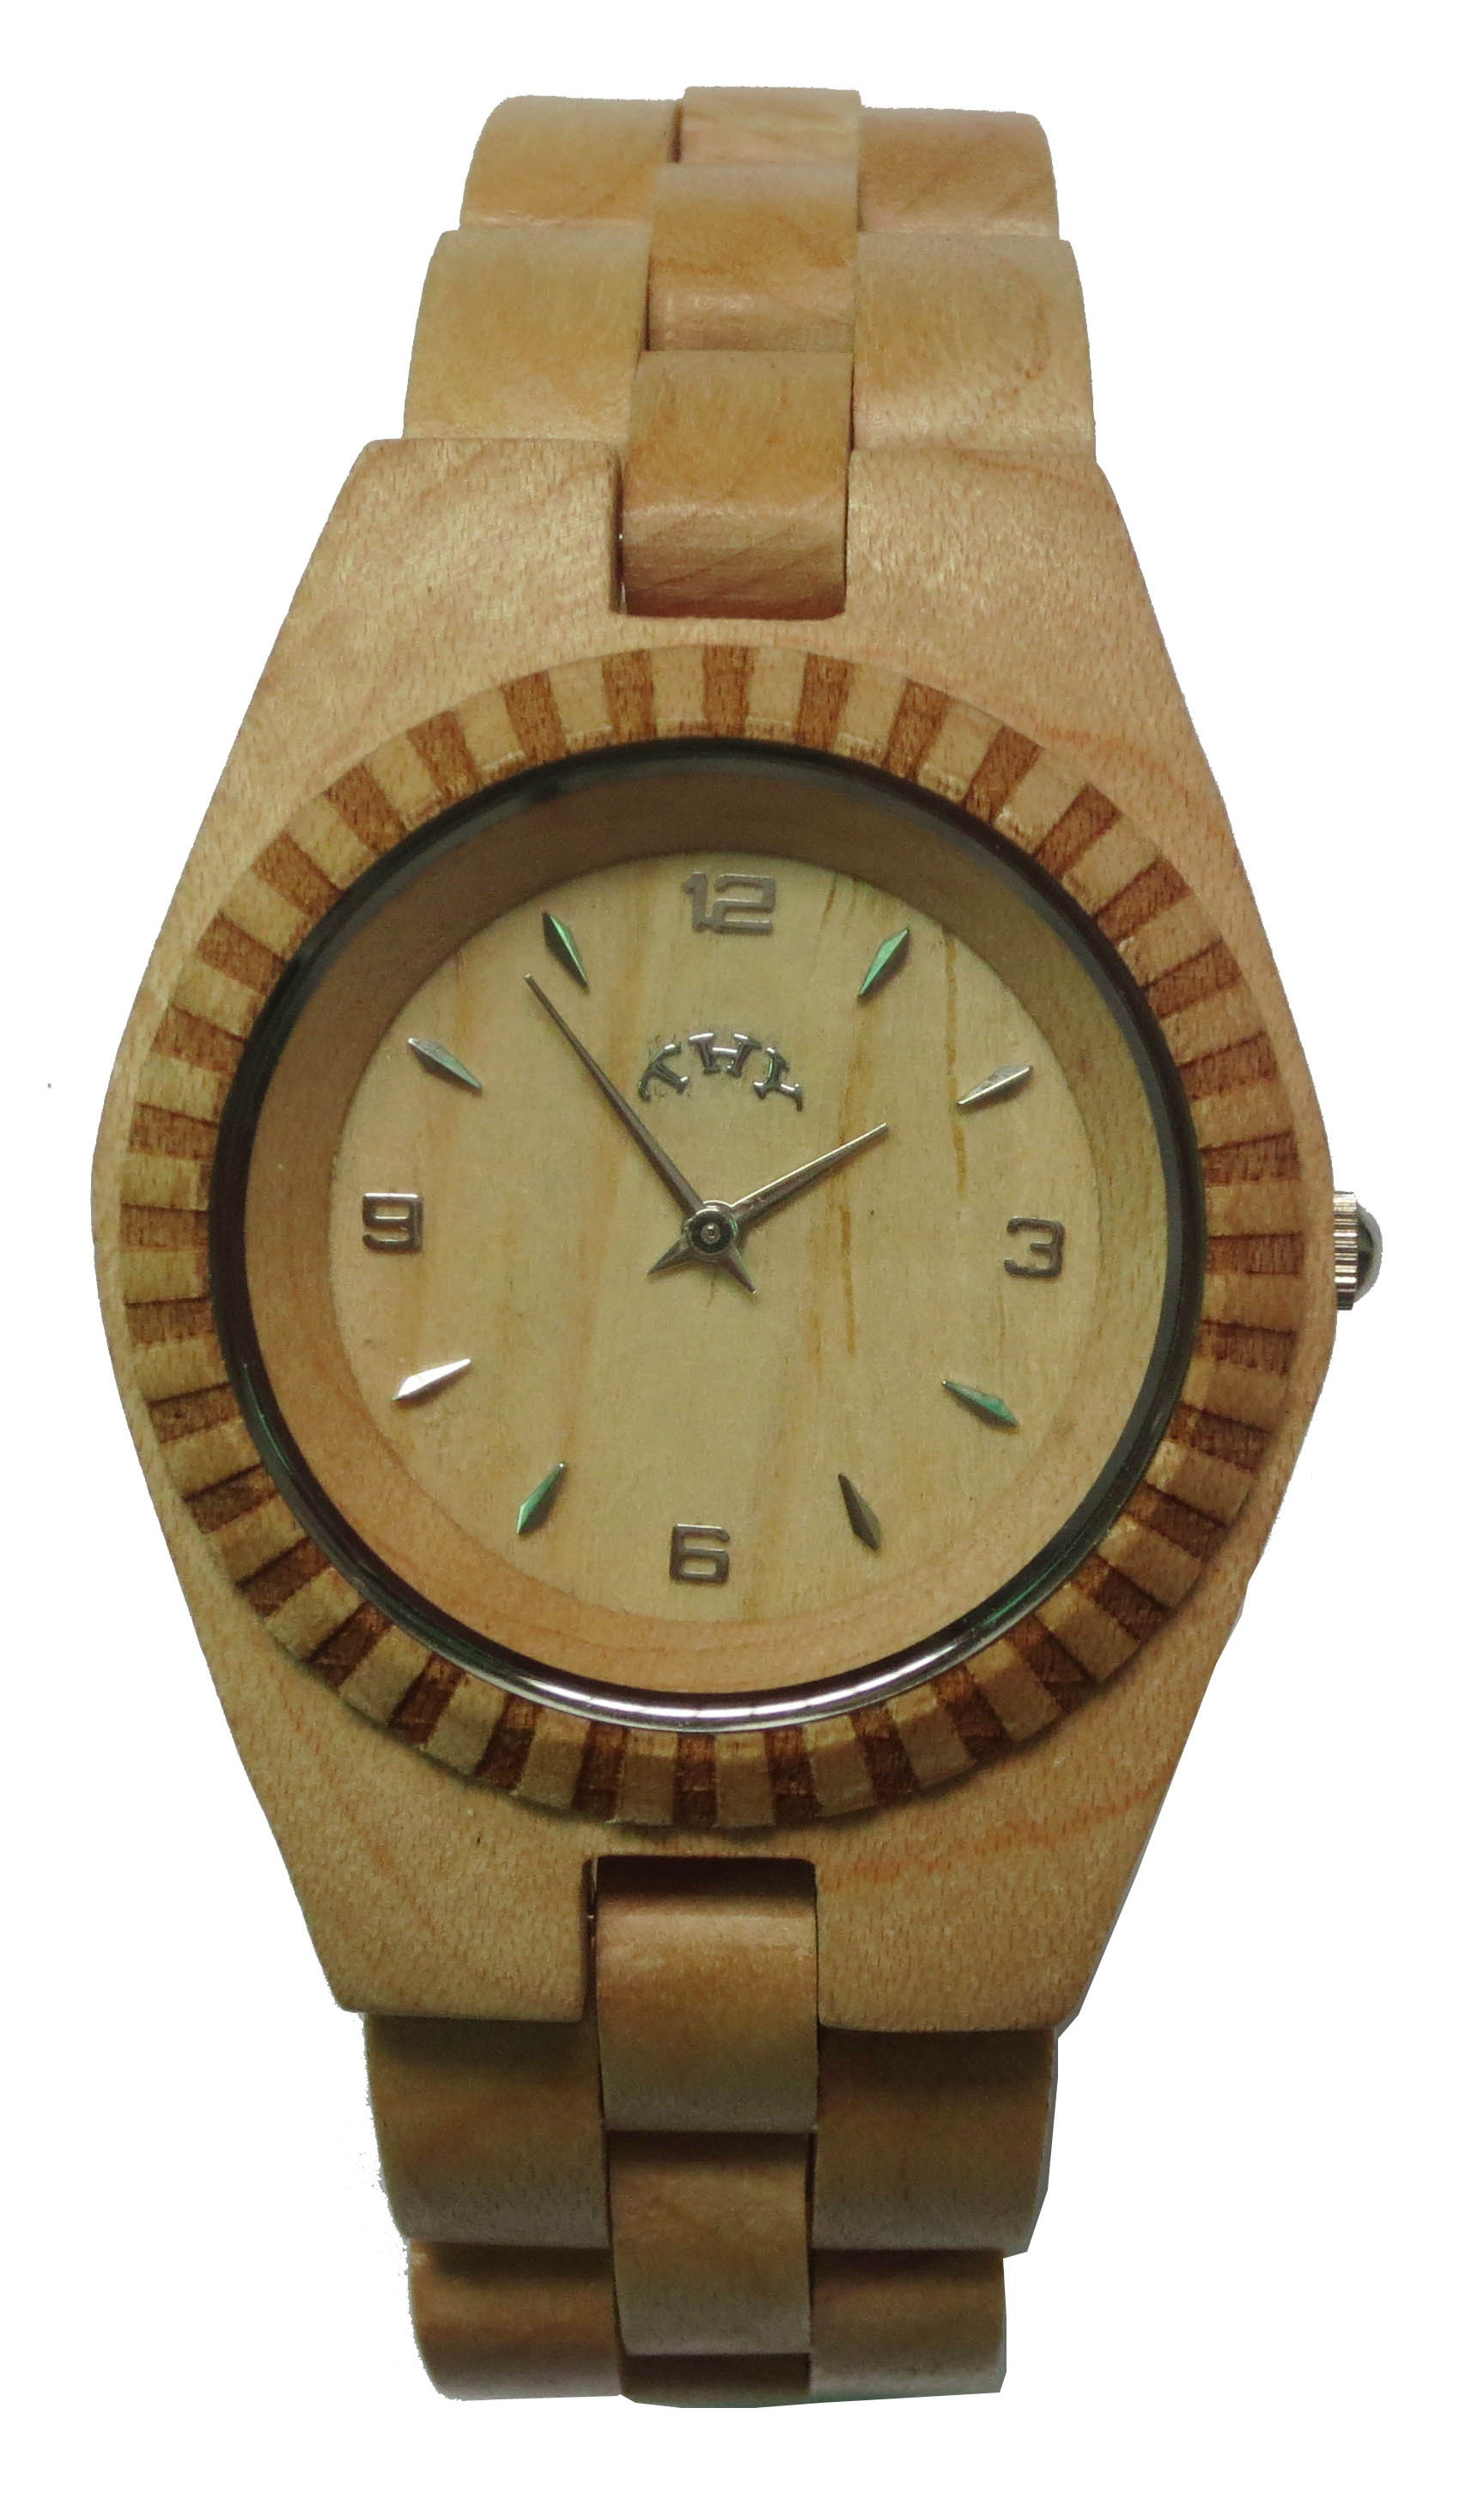 WoMens Yellow Round White Dial Wooden Watches with 33 Mm Size W00022